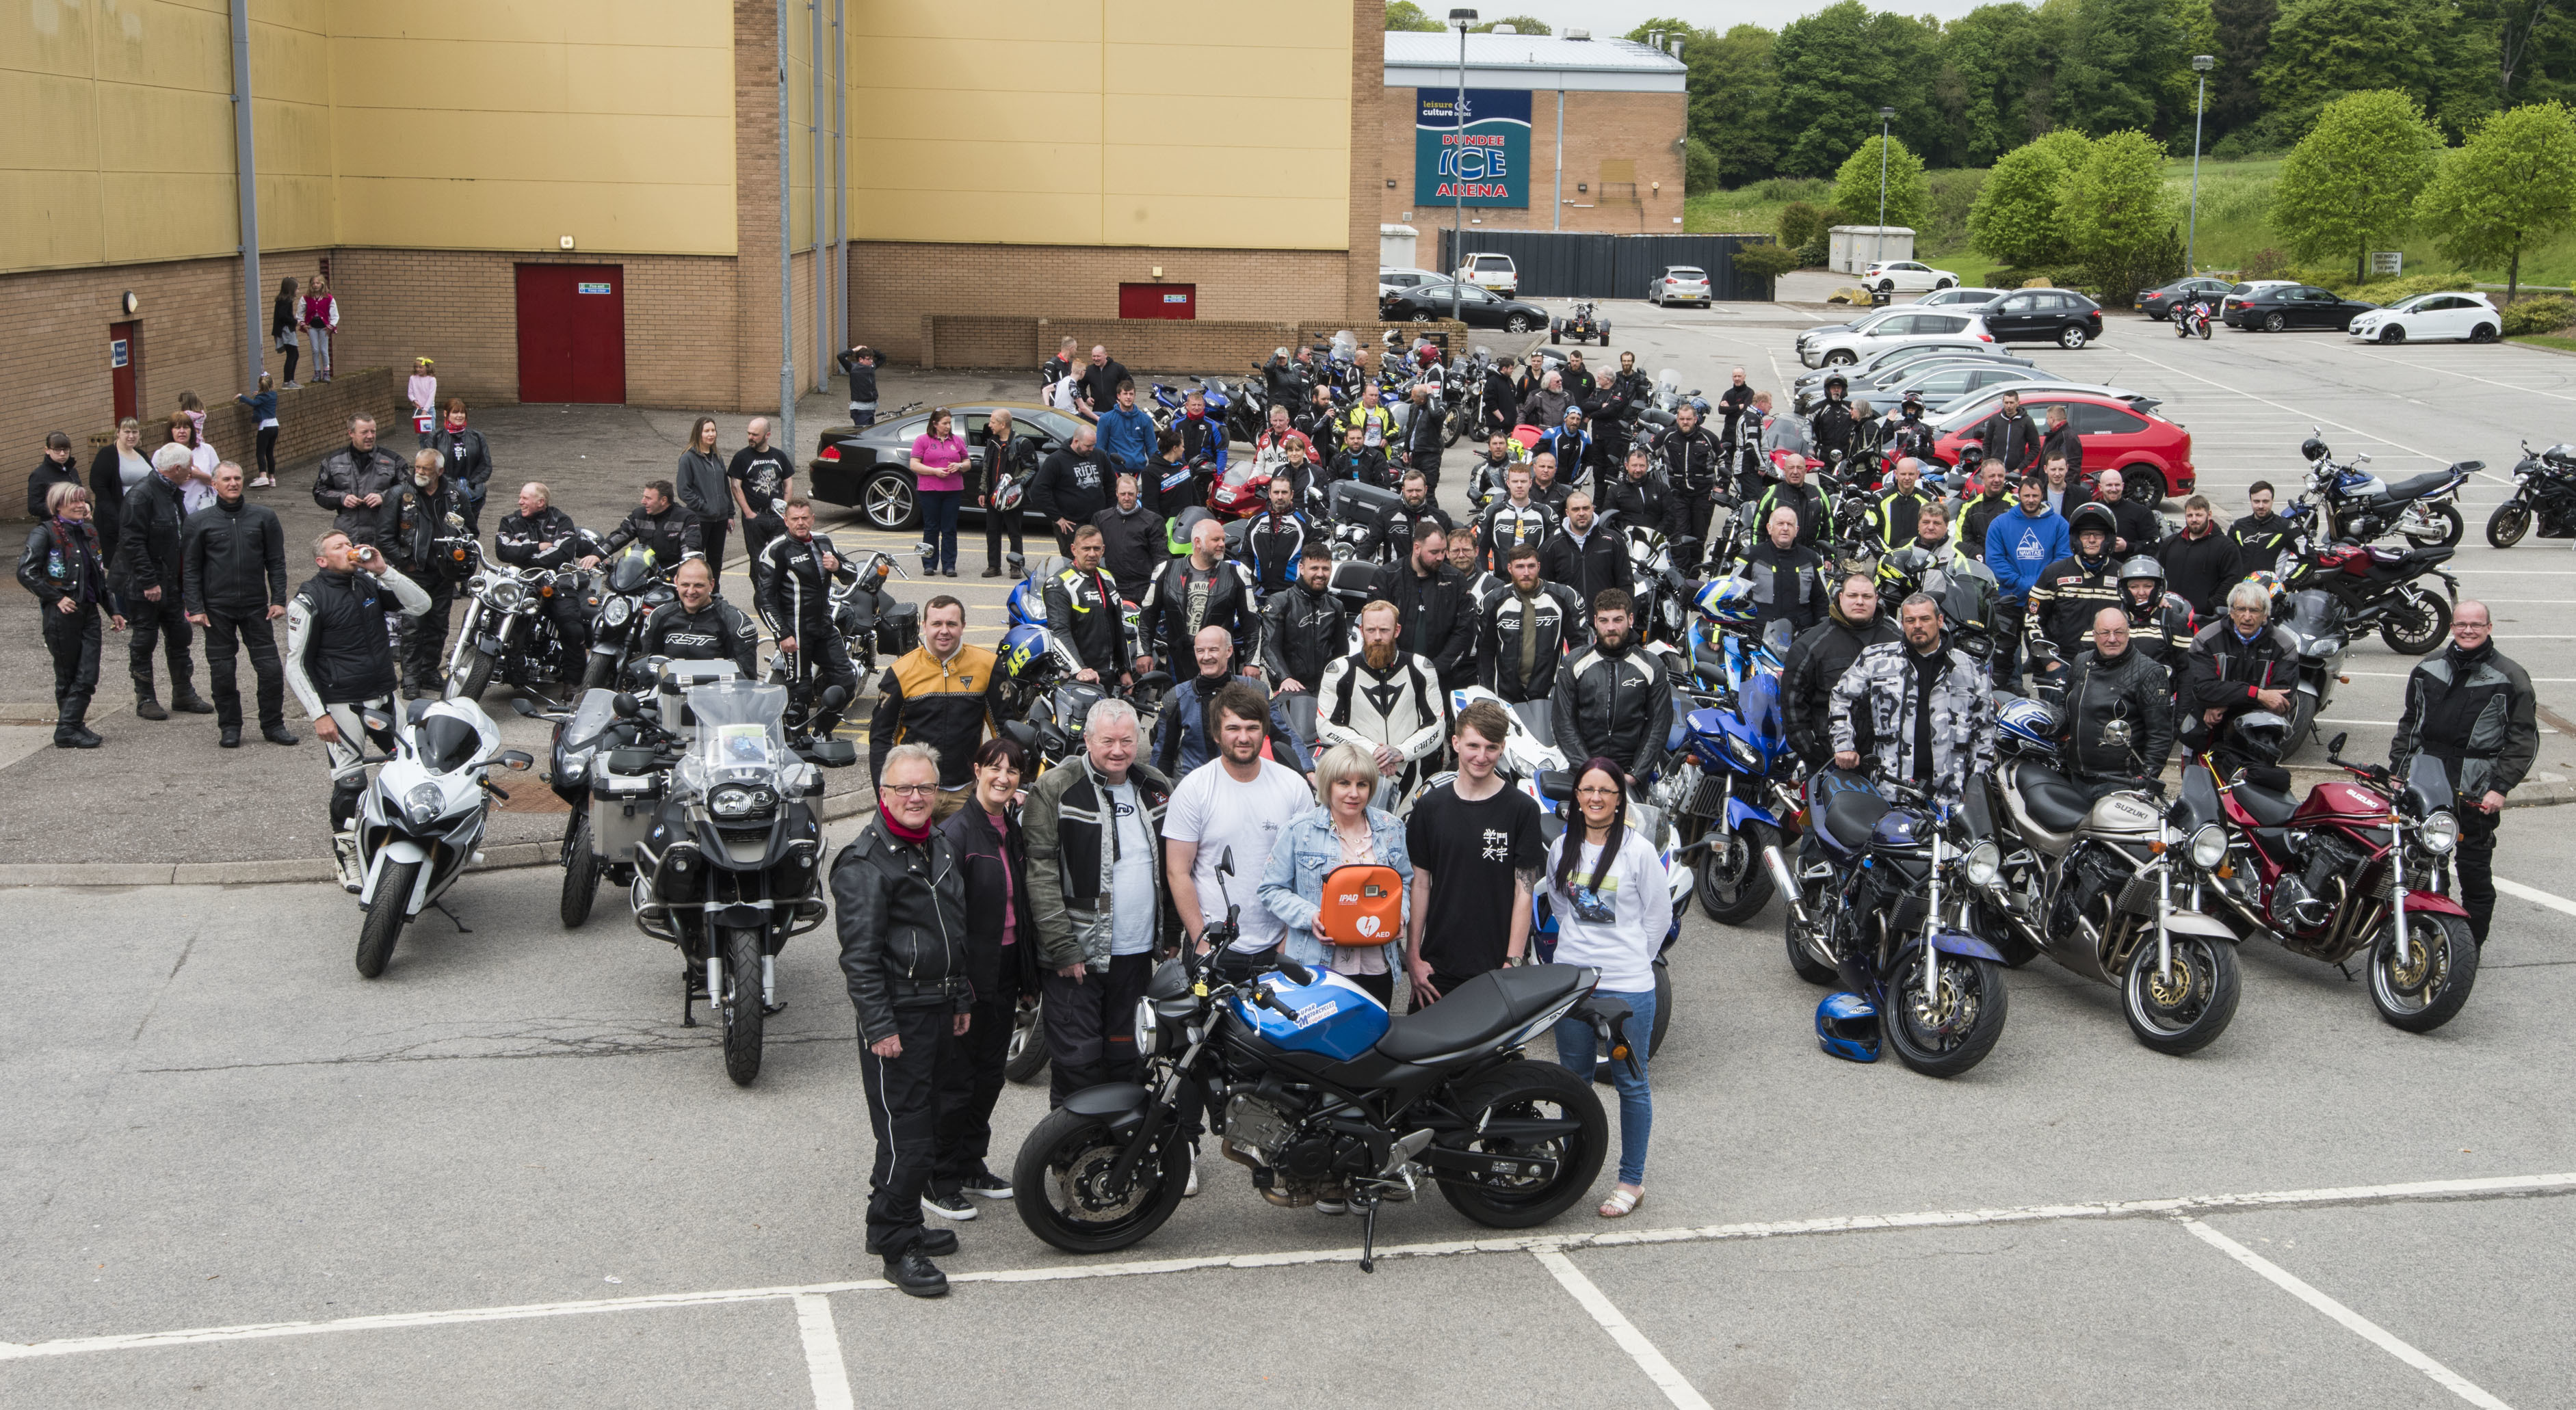 Scores of bikers gathered to remember Graeme Bell with a ride out in 2018.